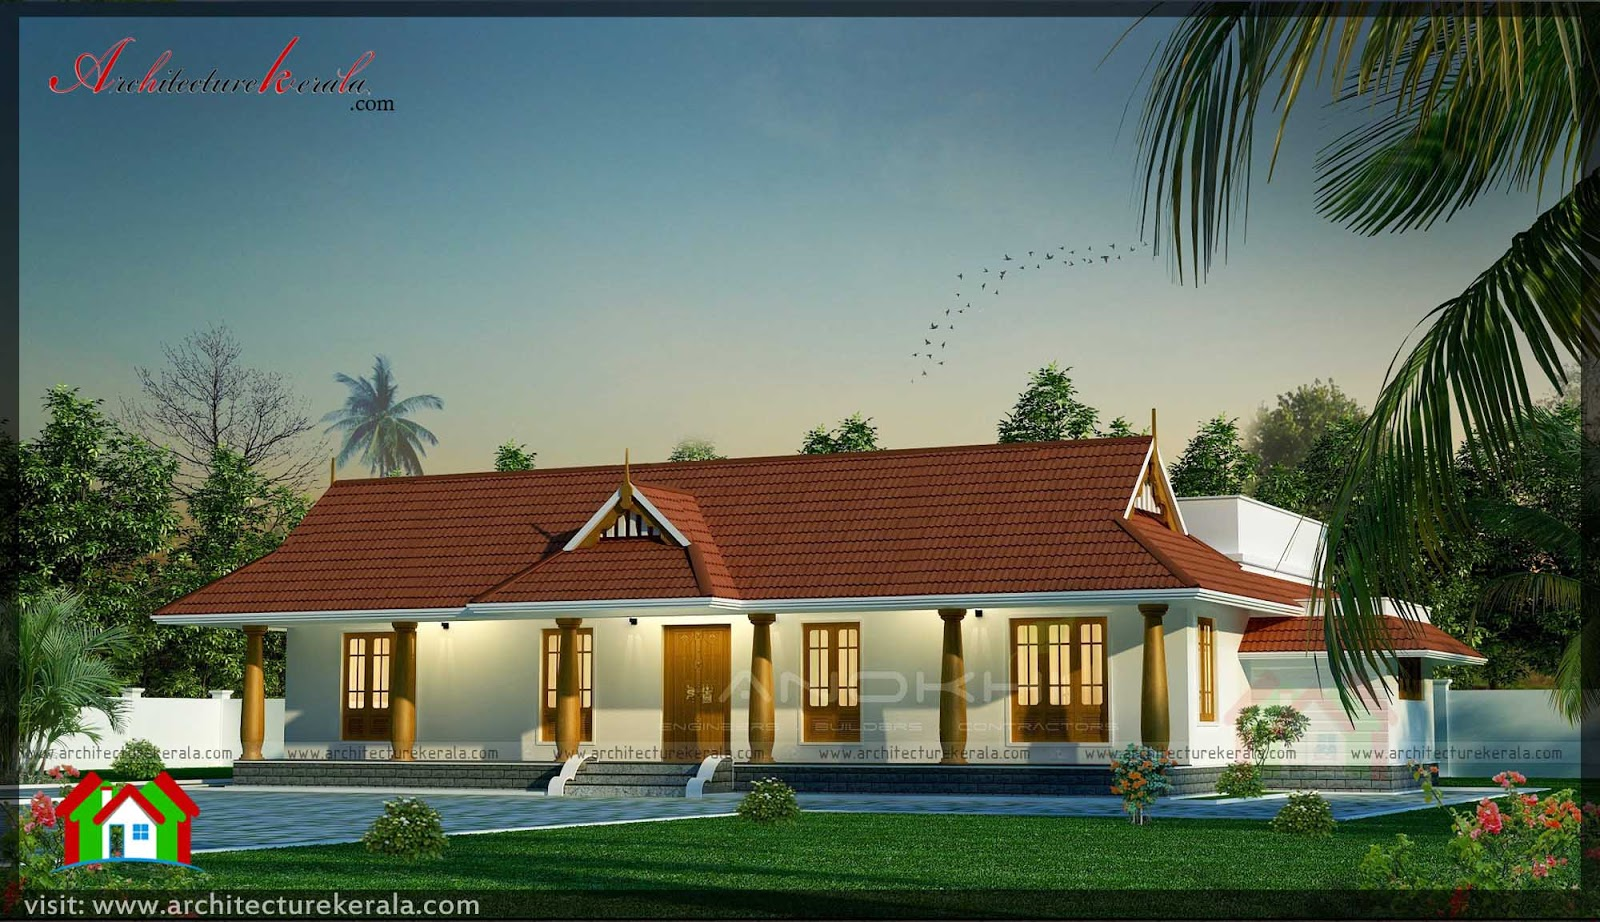 Kerala style house with nadumuttam architecture kerala for Traditional house plans kerala style